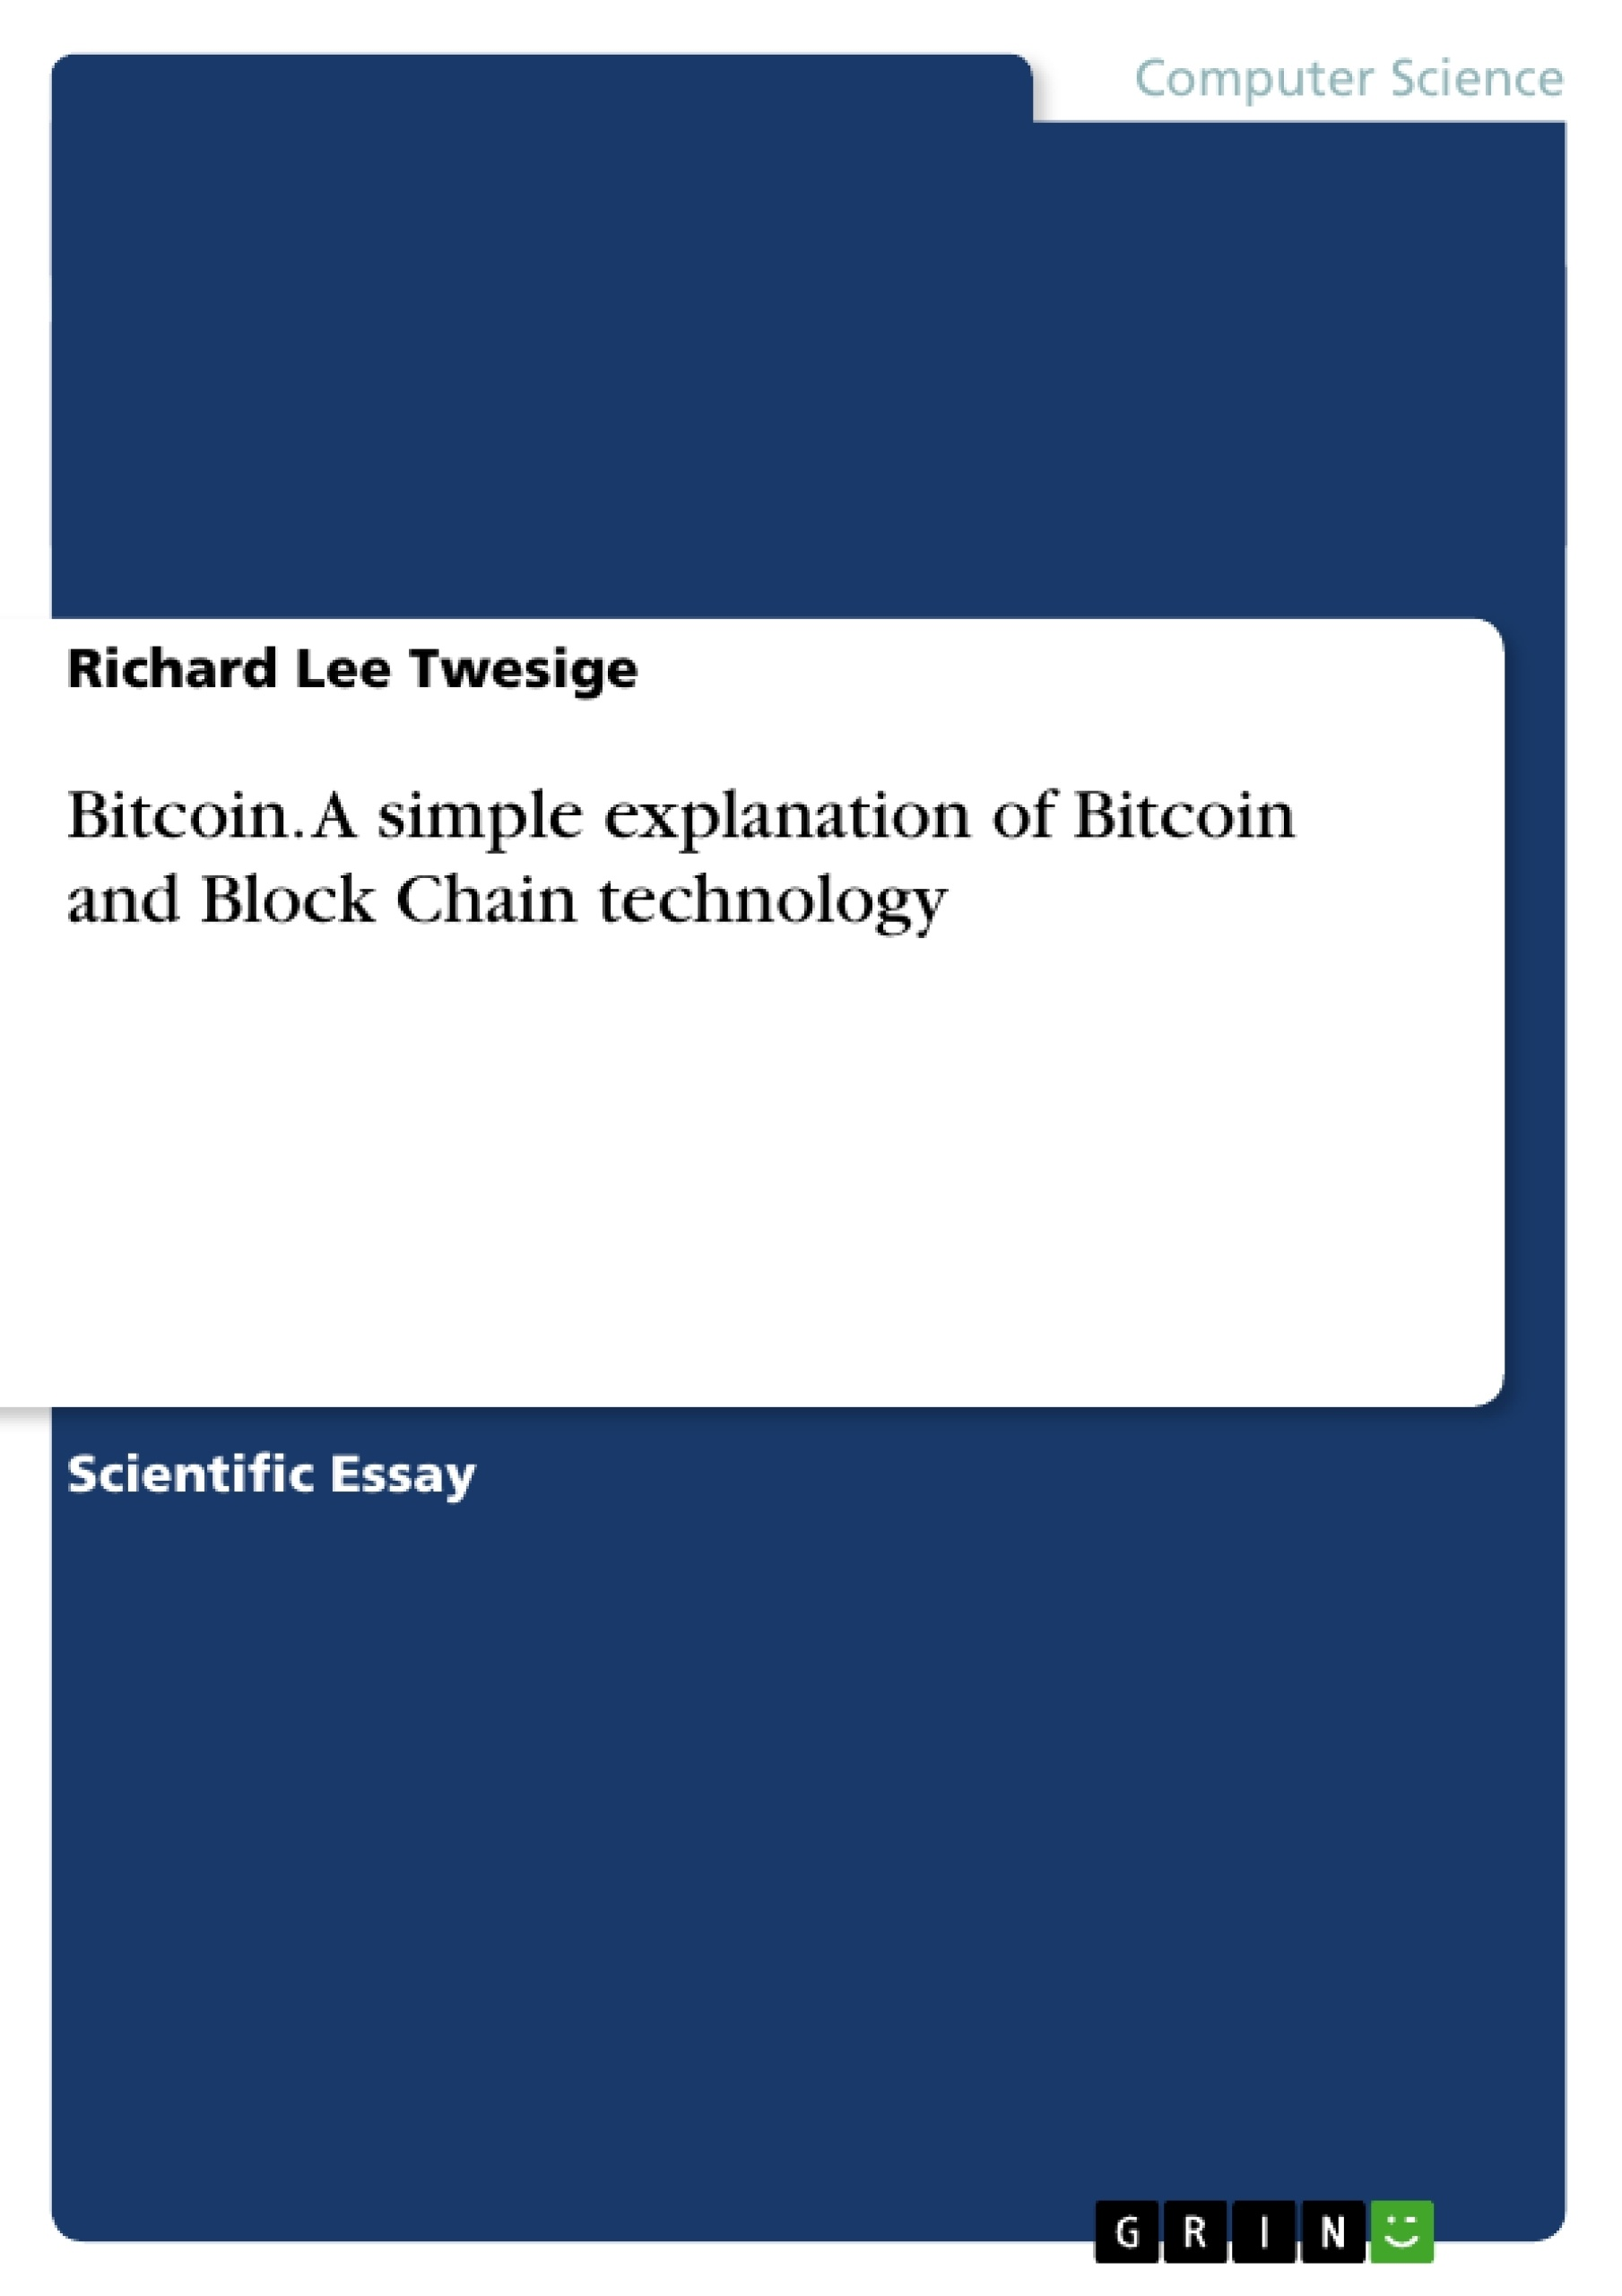 Title: Bitcoin. A simple explanation of Bitcoin and Block Chain technology